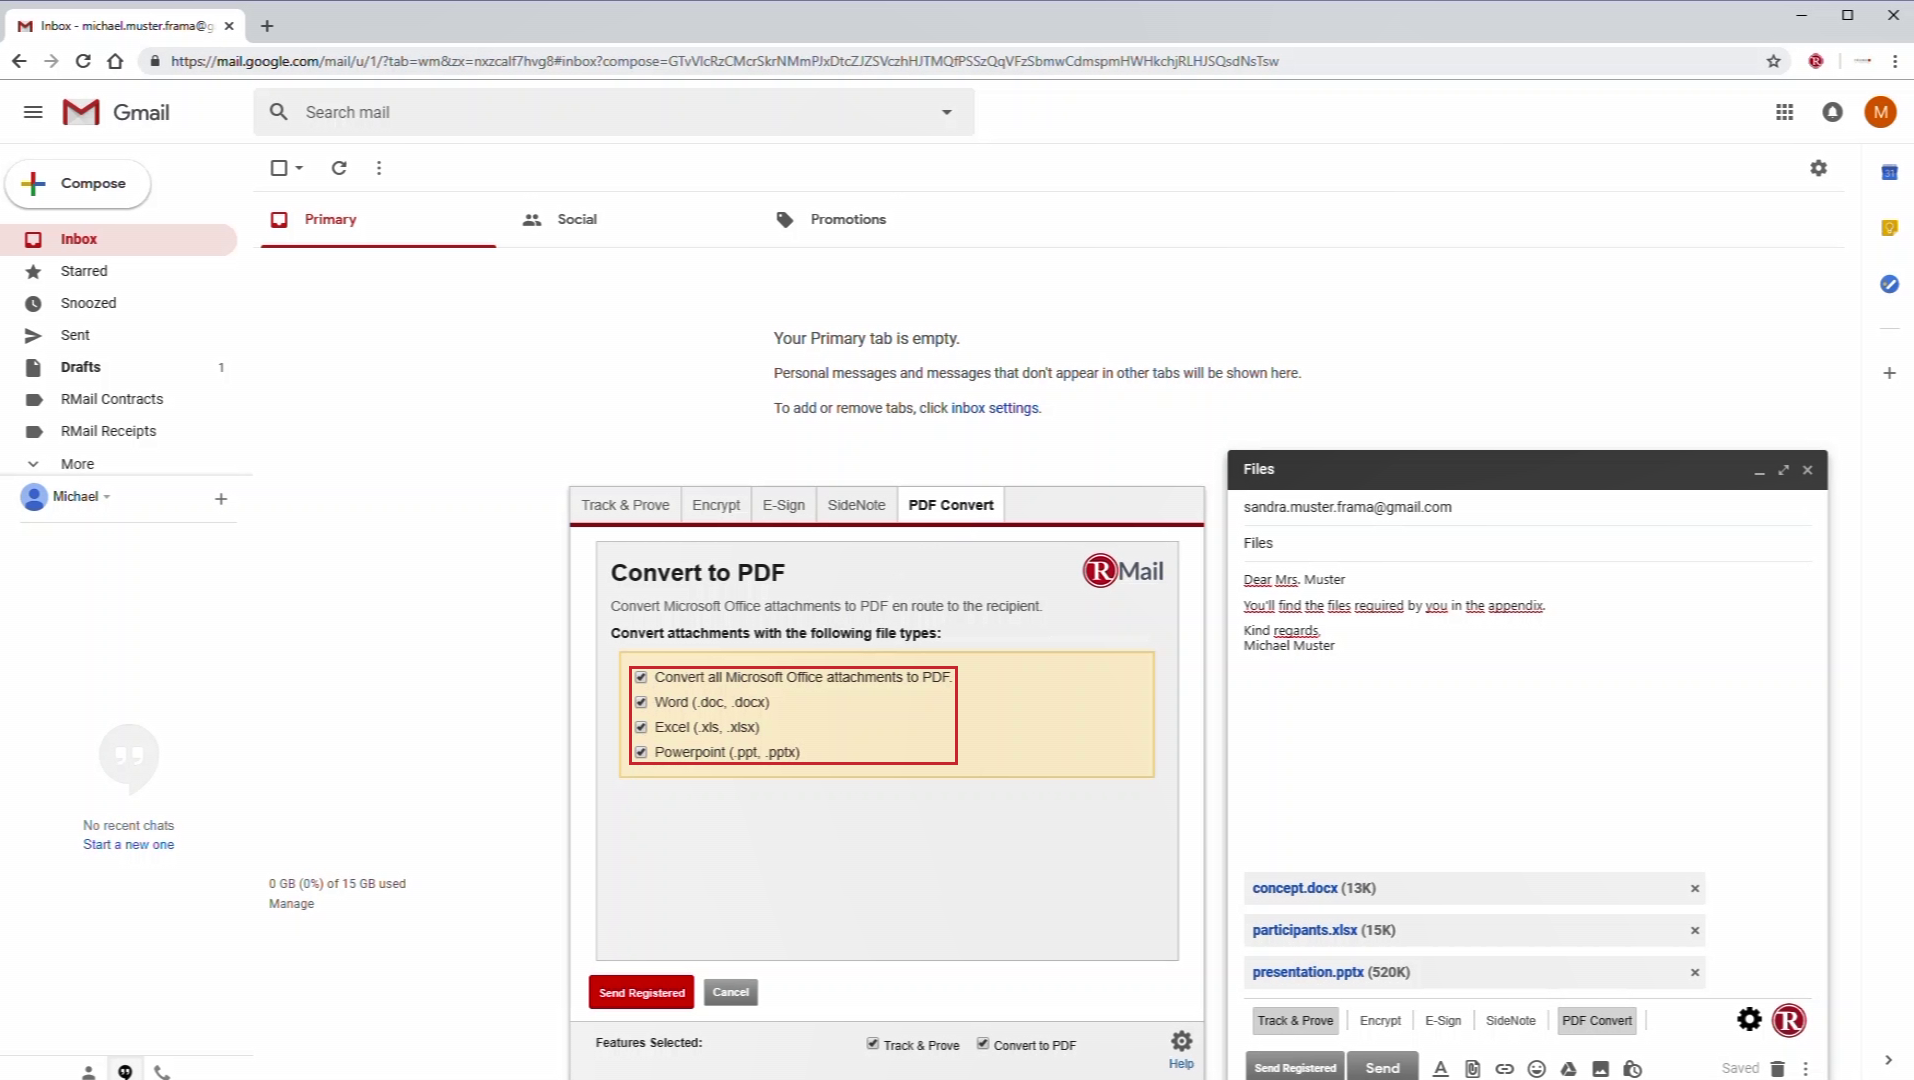 Screenshot of how to convert your email attachments to PDF using RMail. Works even if you use Gmail.